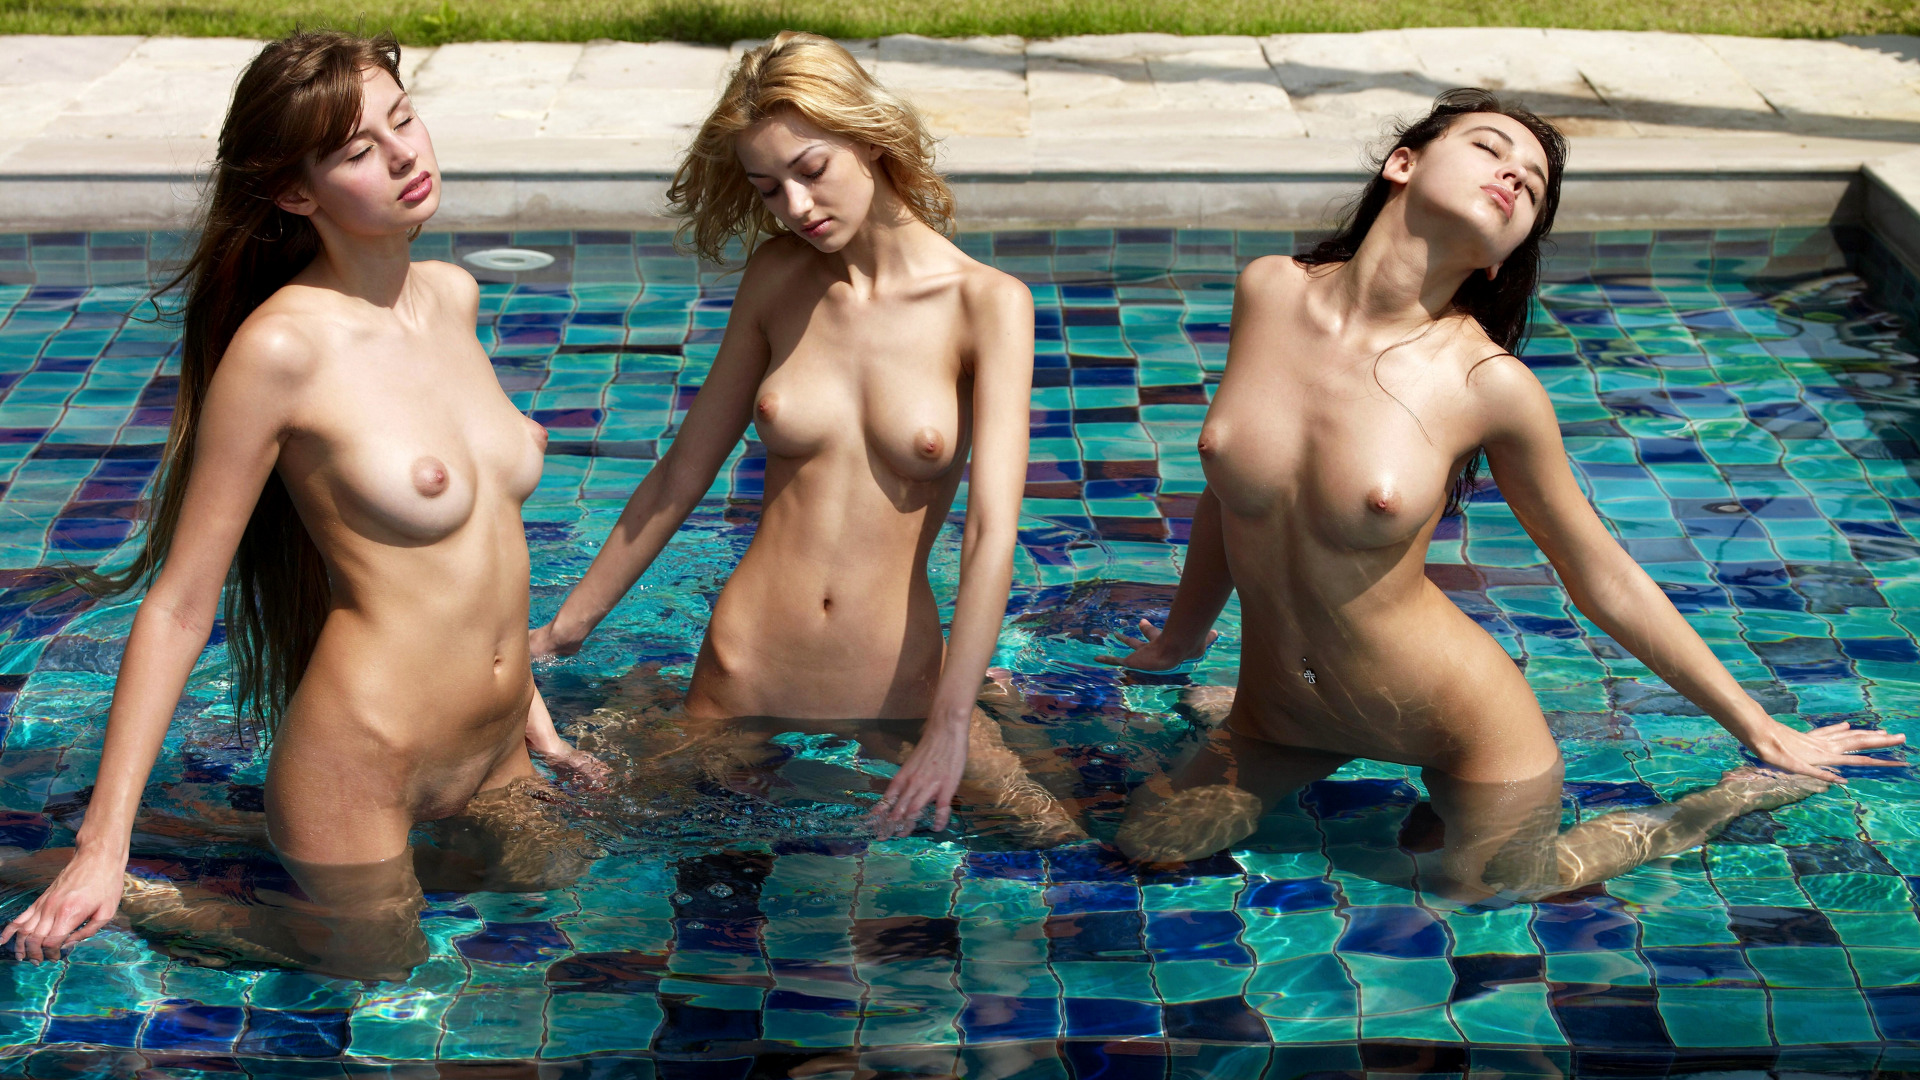 Hot nude adult swimming exposed photos